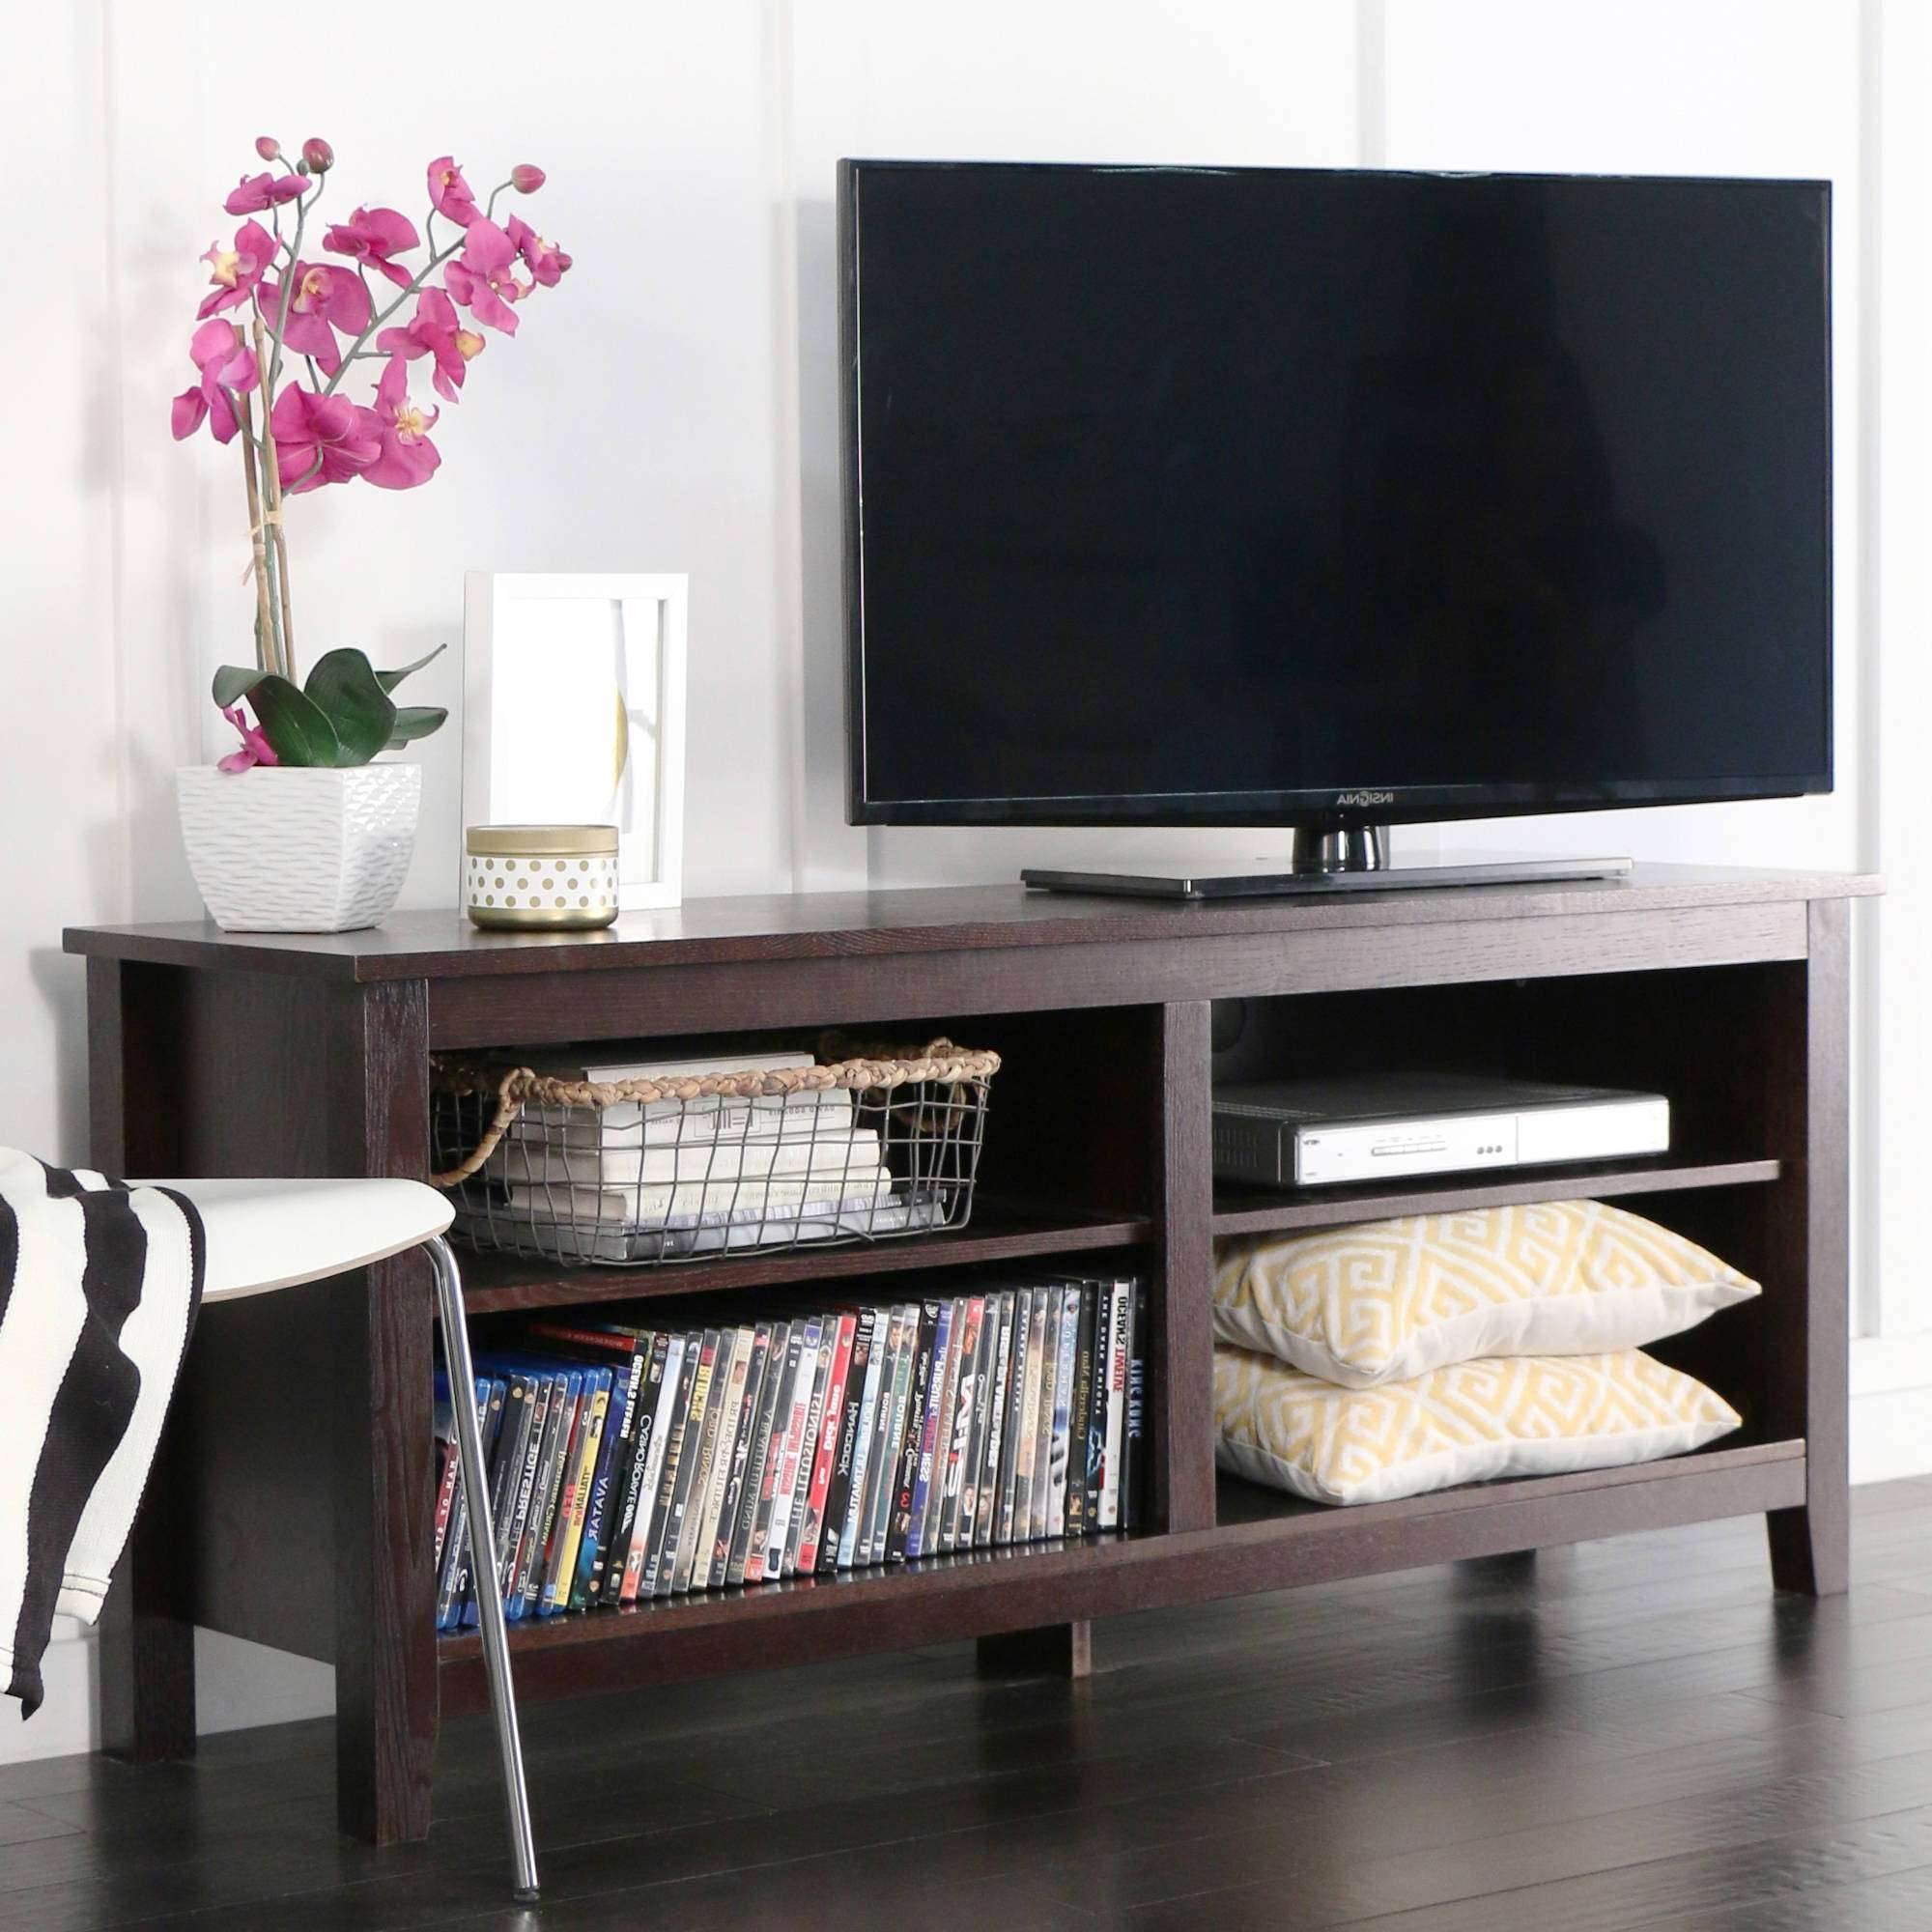 Tv : Rustic Red Tv Stands Glorious Rustic Red Tv Stands' Dramatic With Rustic Red Tv Stands (View 16 of 20)